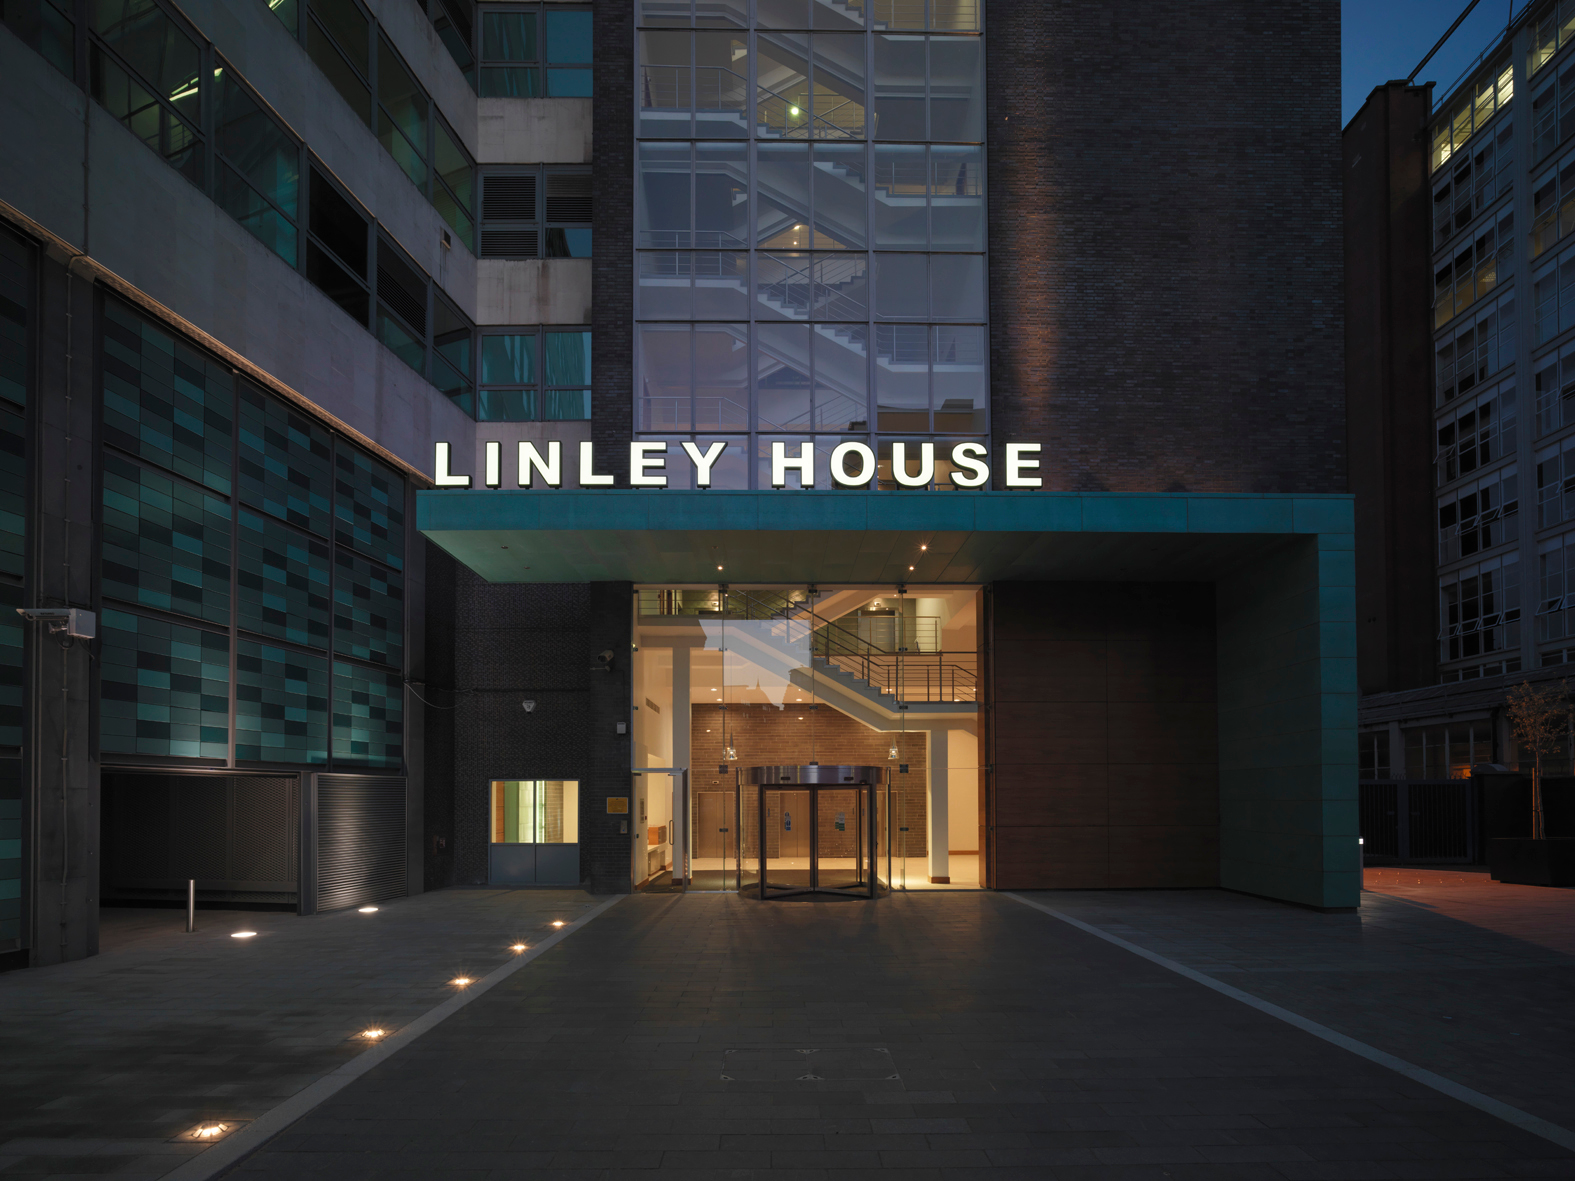 Linley House